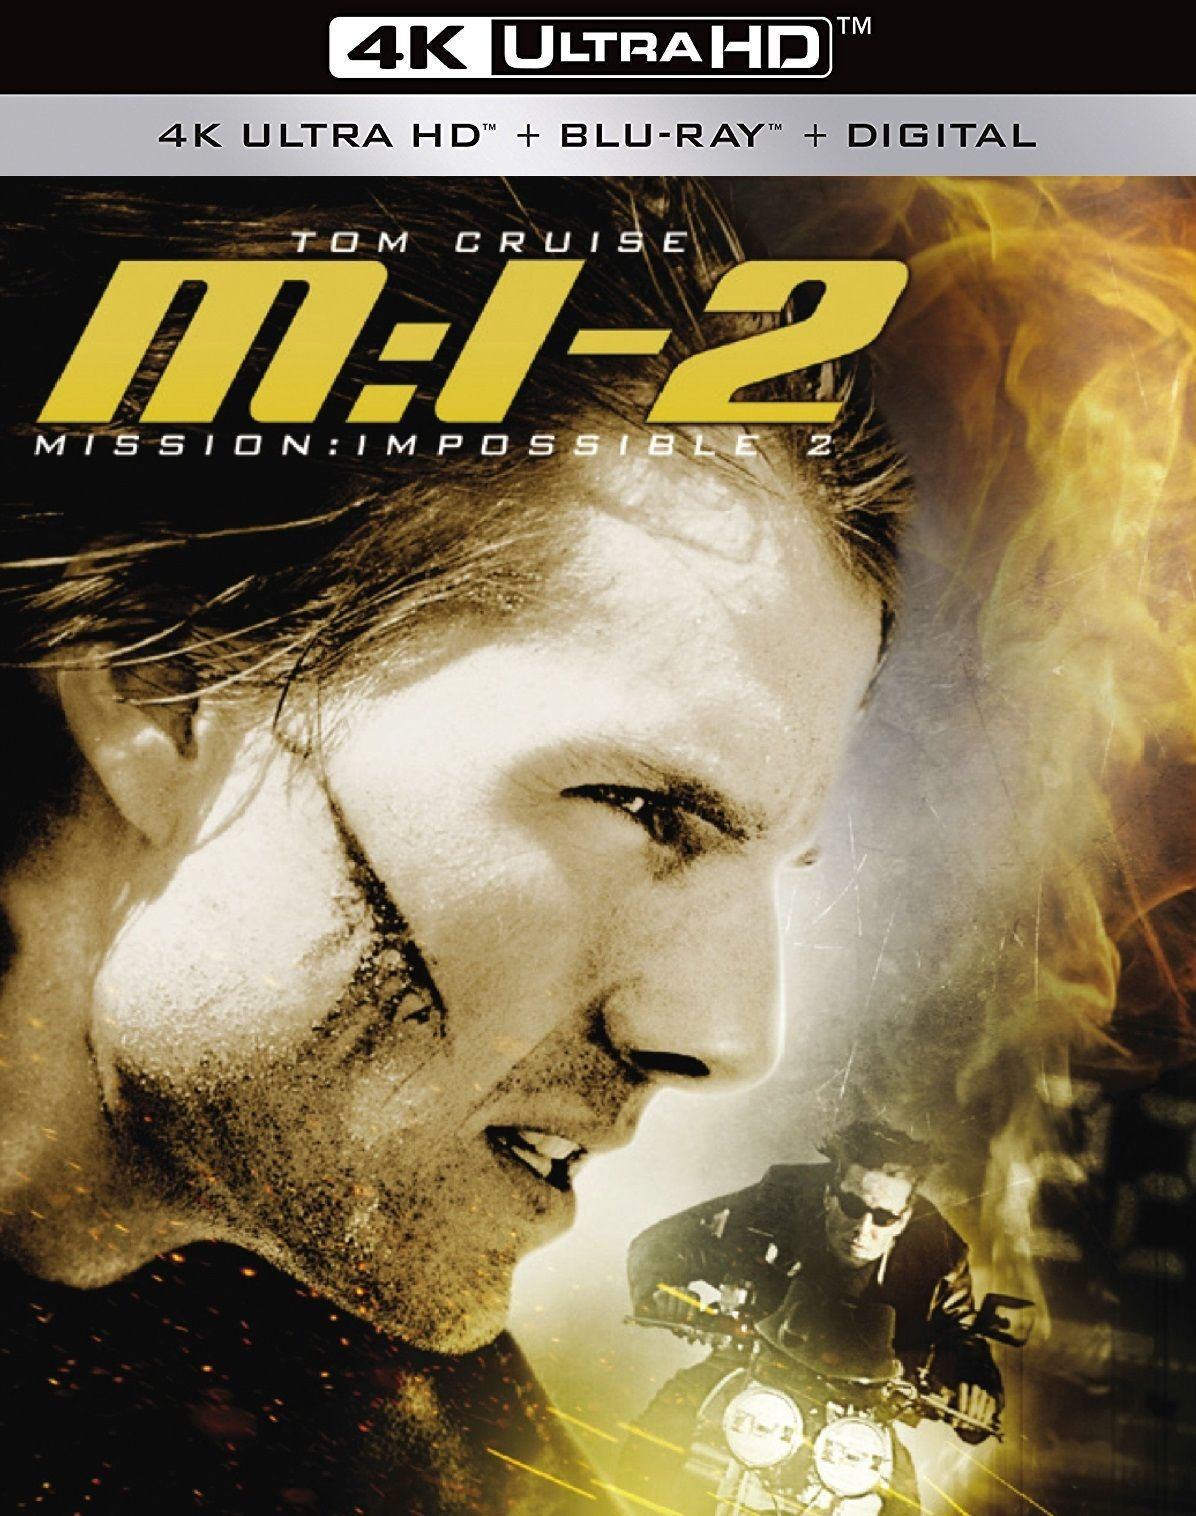 Mission Impossible Ii 4k 2000 Ultra Hd Blu Ray Tom Cruise Mission Impossible John Woo